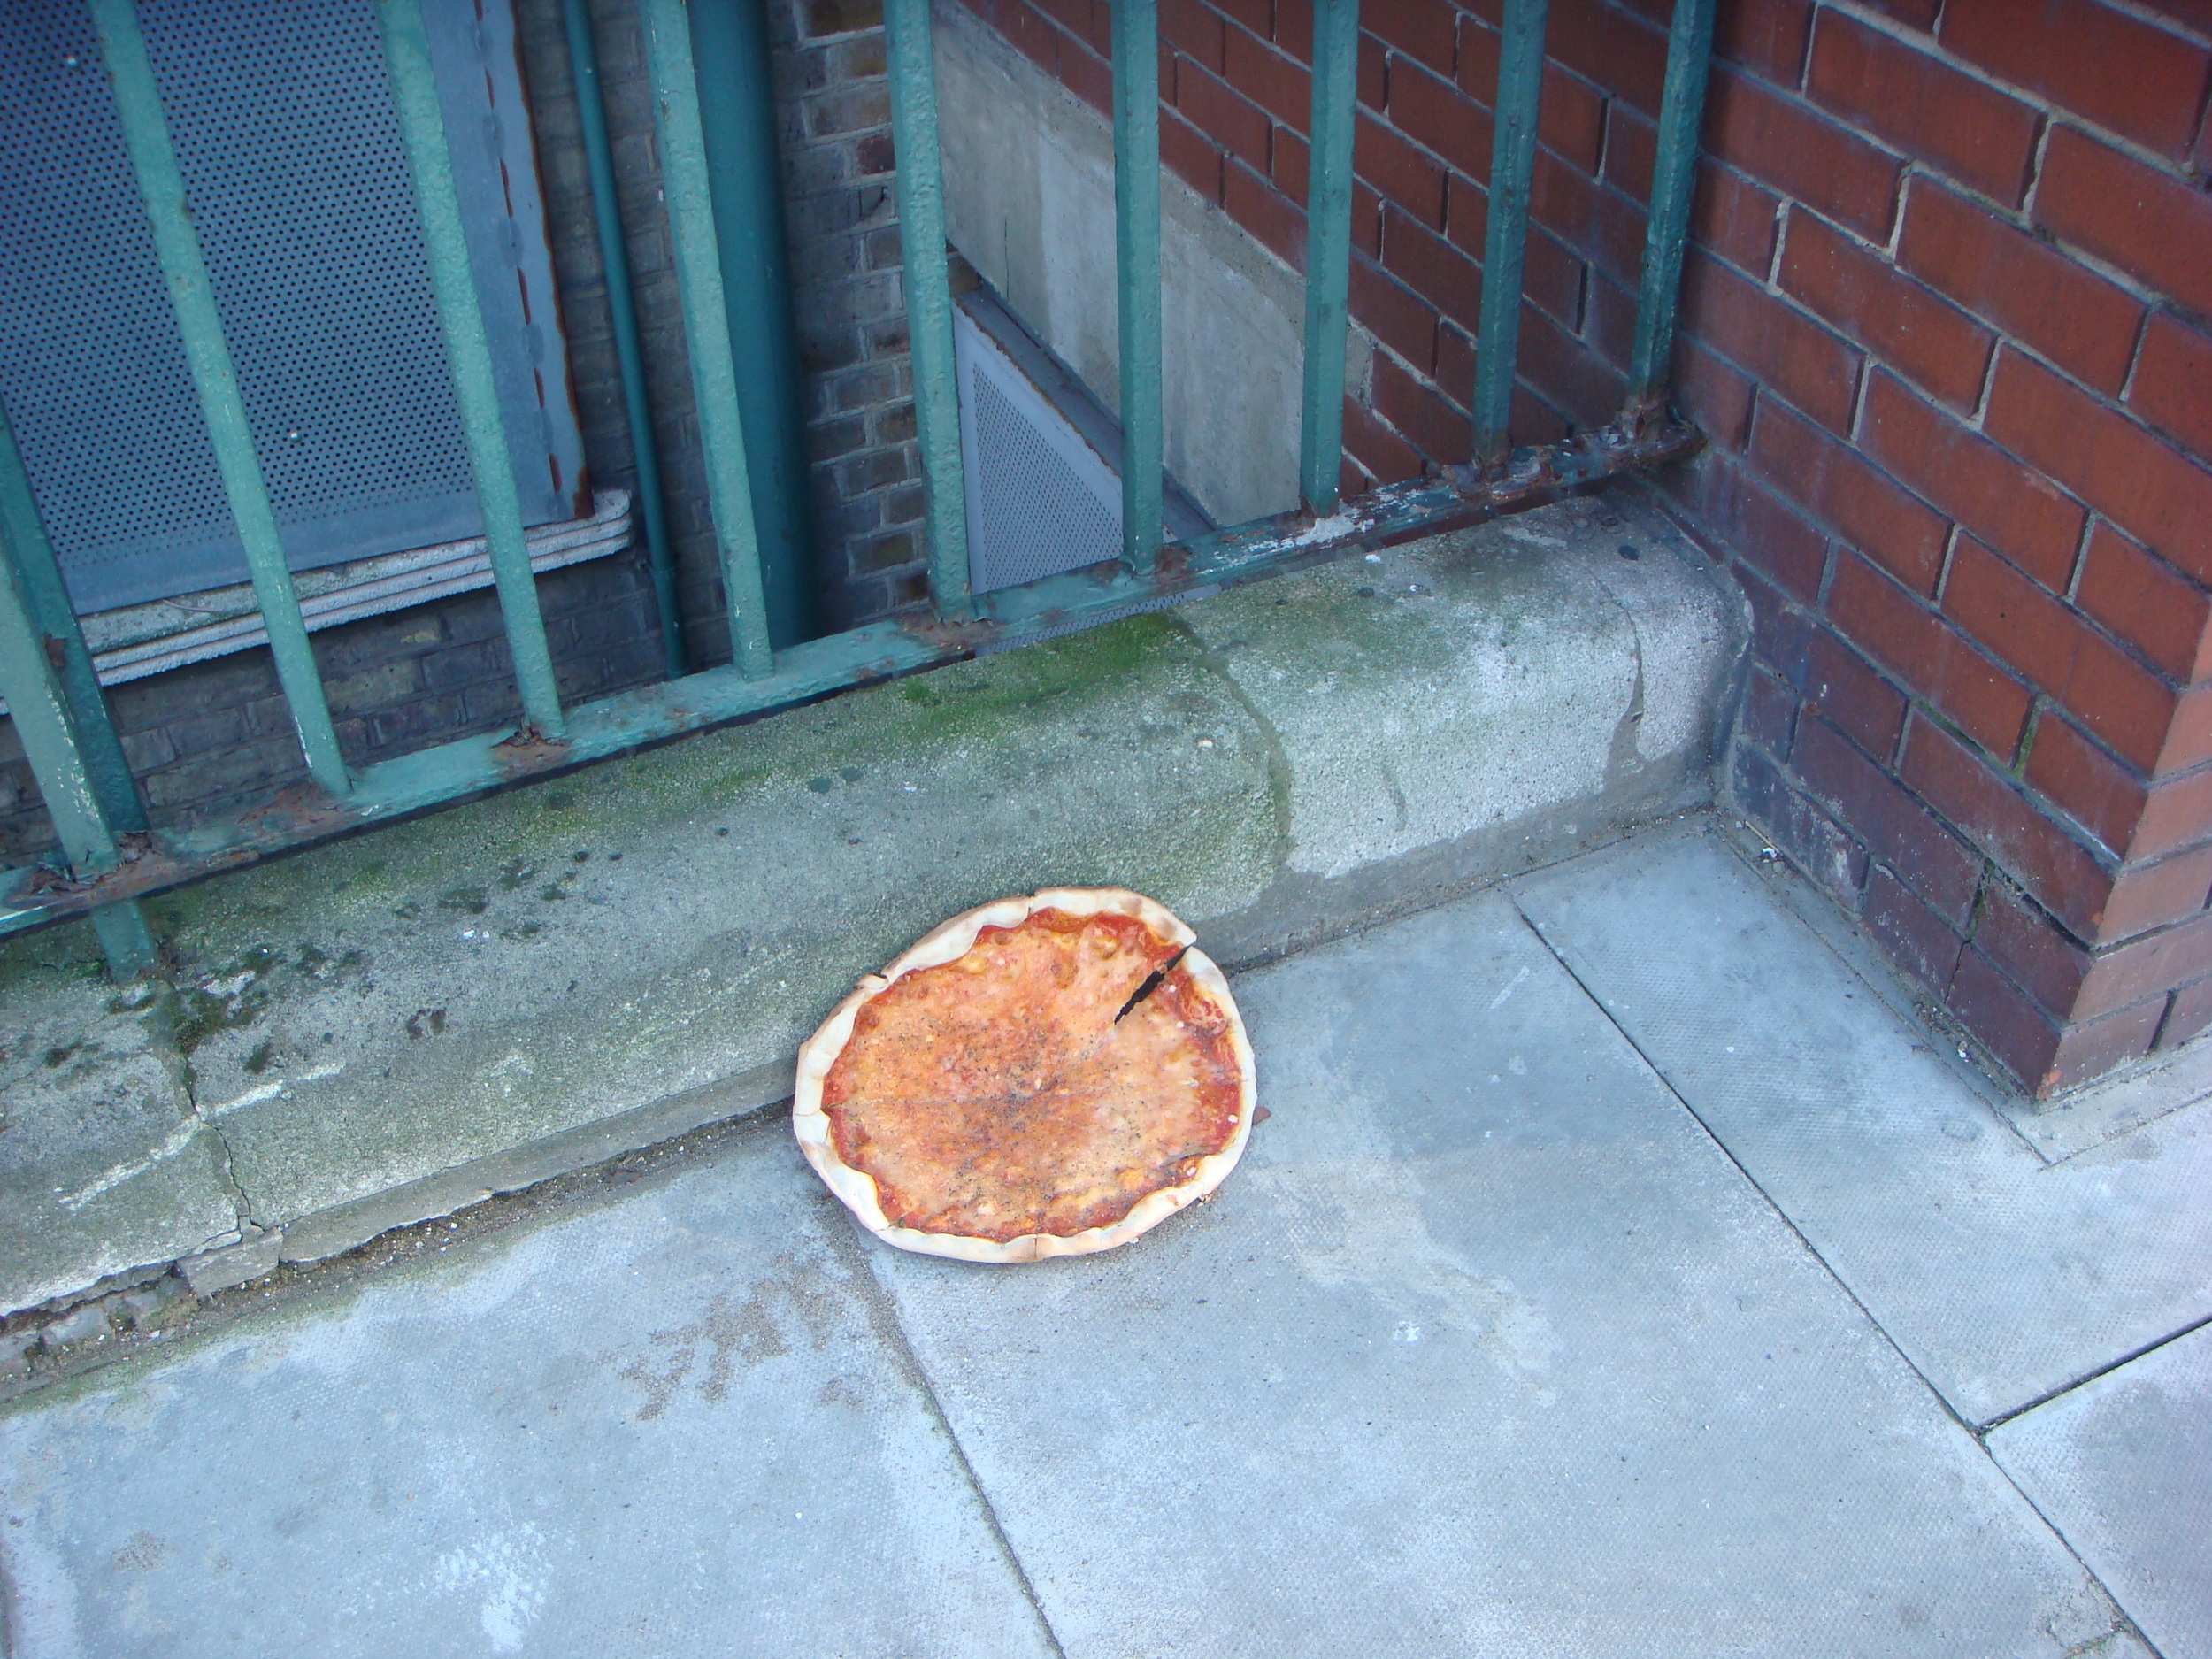 Sad pizza, London